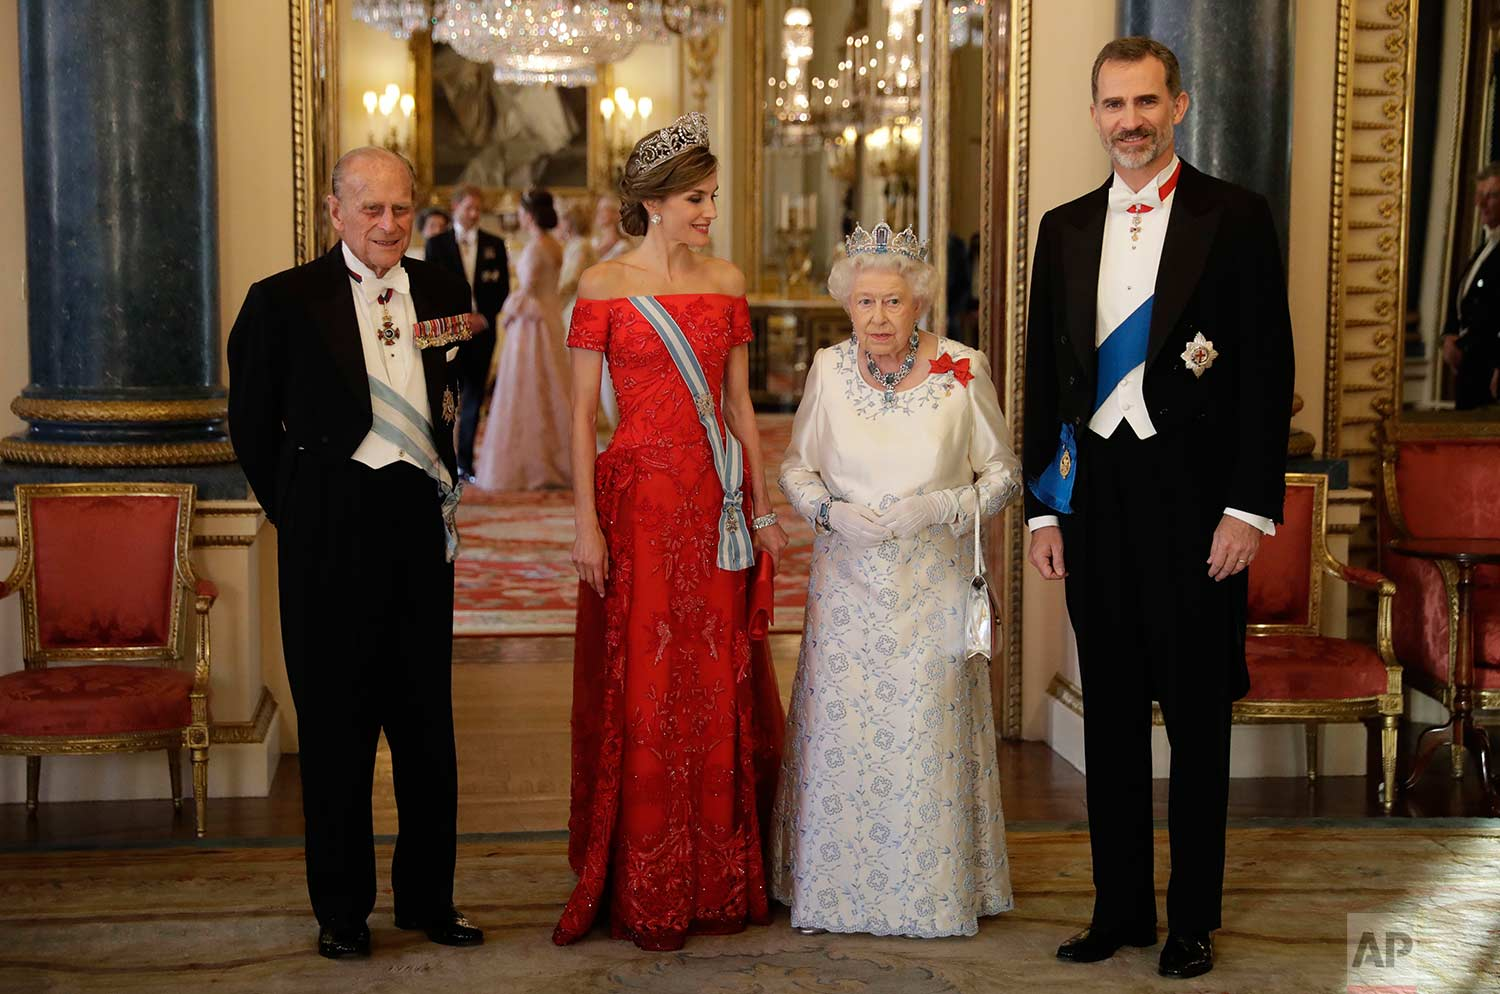 Queen Elizabeth II, her husband Prince Philip, Spain's King Felipe and his wife, Queen Letizia, pose for a group photograph before a State Banquet at Buckingham Palace in London, Wednesday, July 12, 2017. (AP Photo/Matt Dunham, Pool)